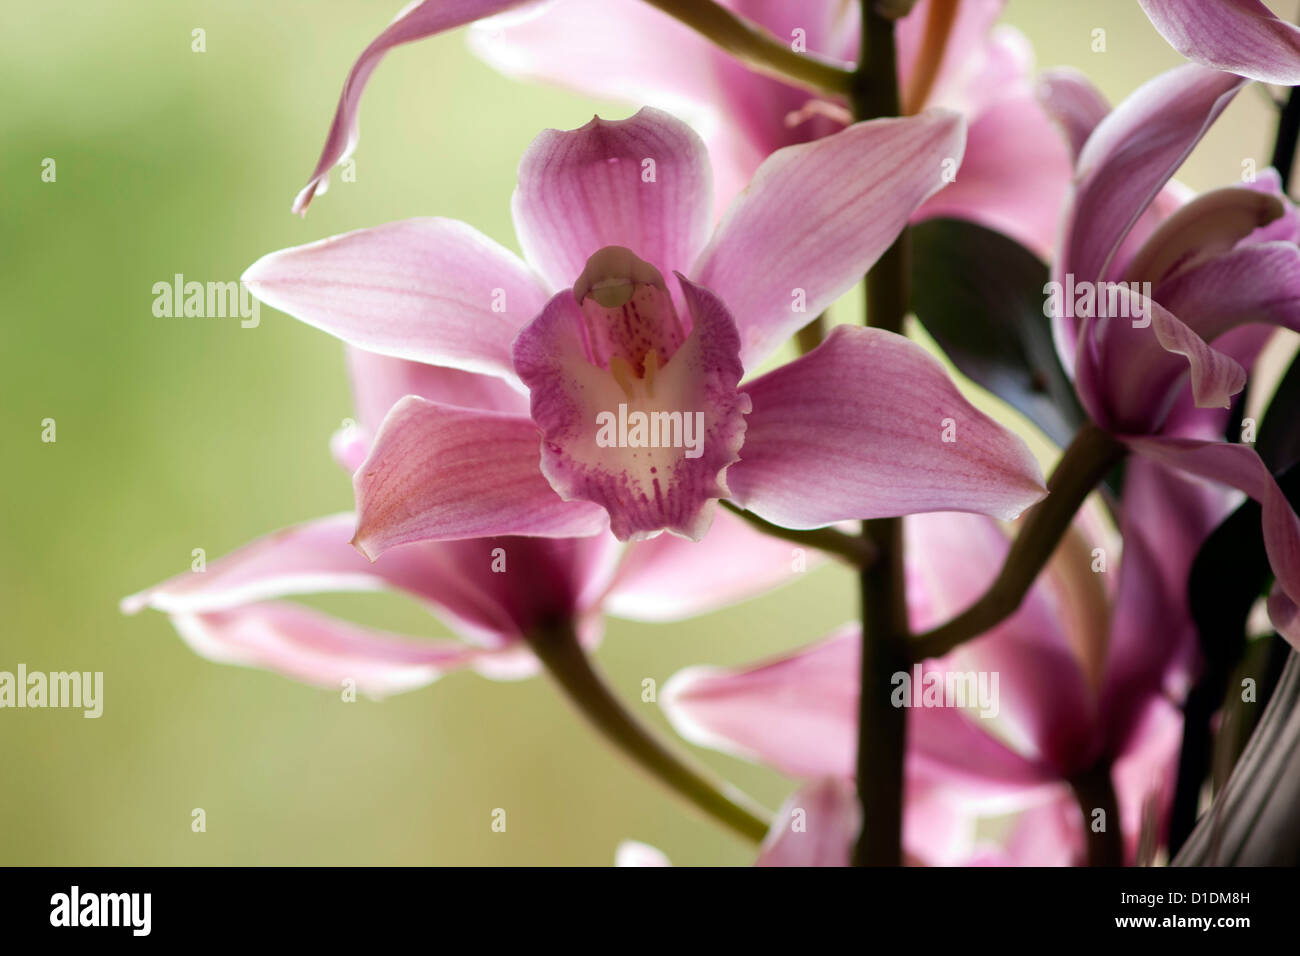 Bunch of pink flowers. Colorful flowers bring breath of freshness in a house or an office Stock Photo